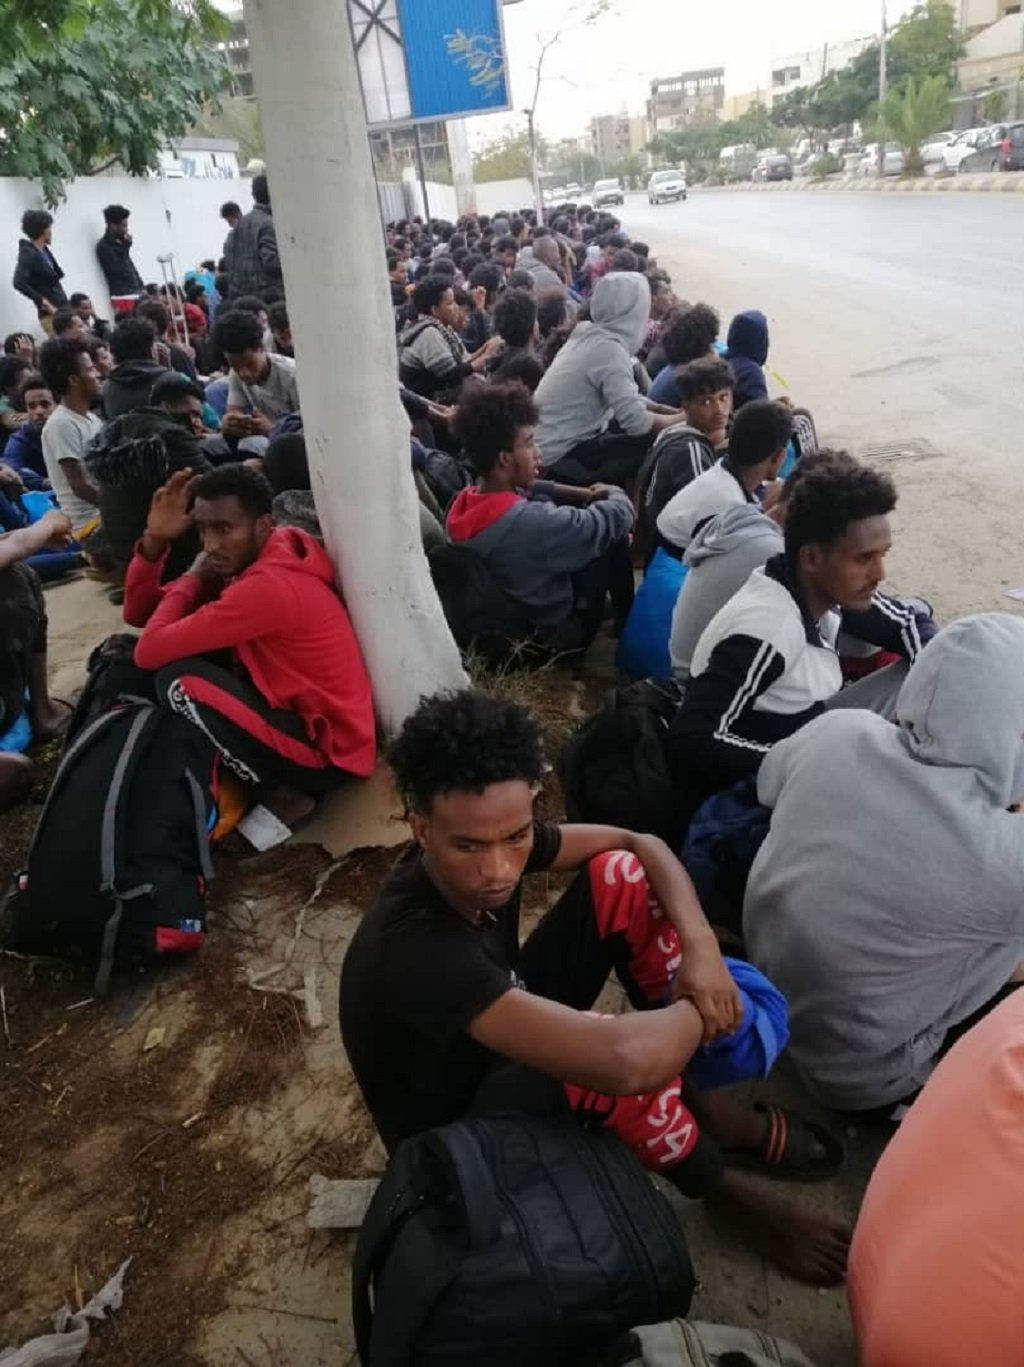 Photo sent to InfoMigrants showing a group of Abu Salim migrants sit outside the UNHCR-run GDF in Tripoli | Photo: Private